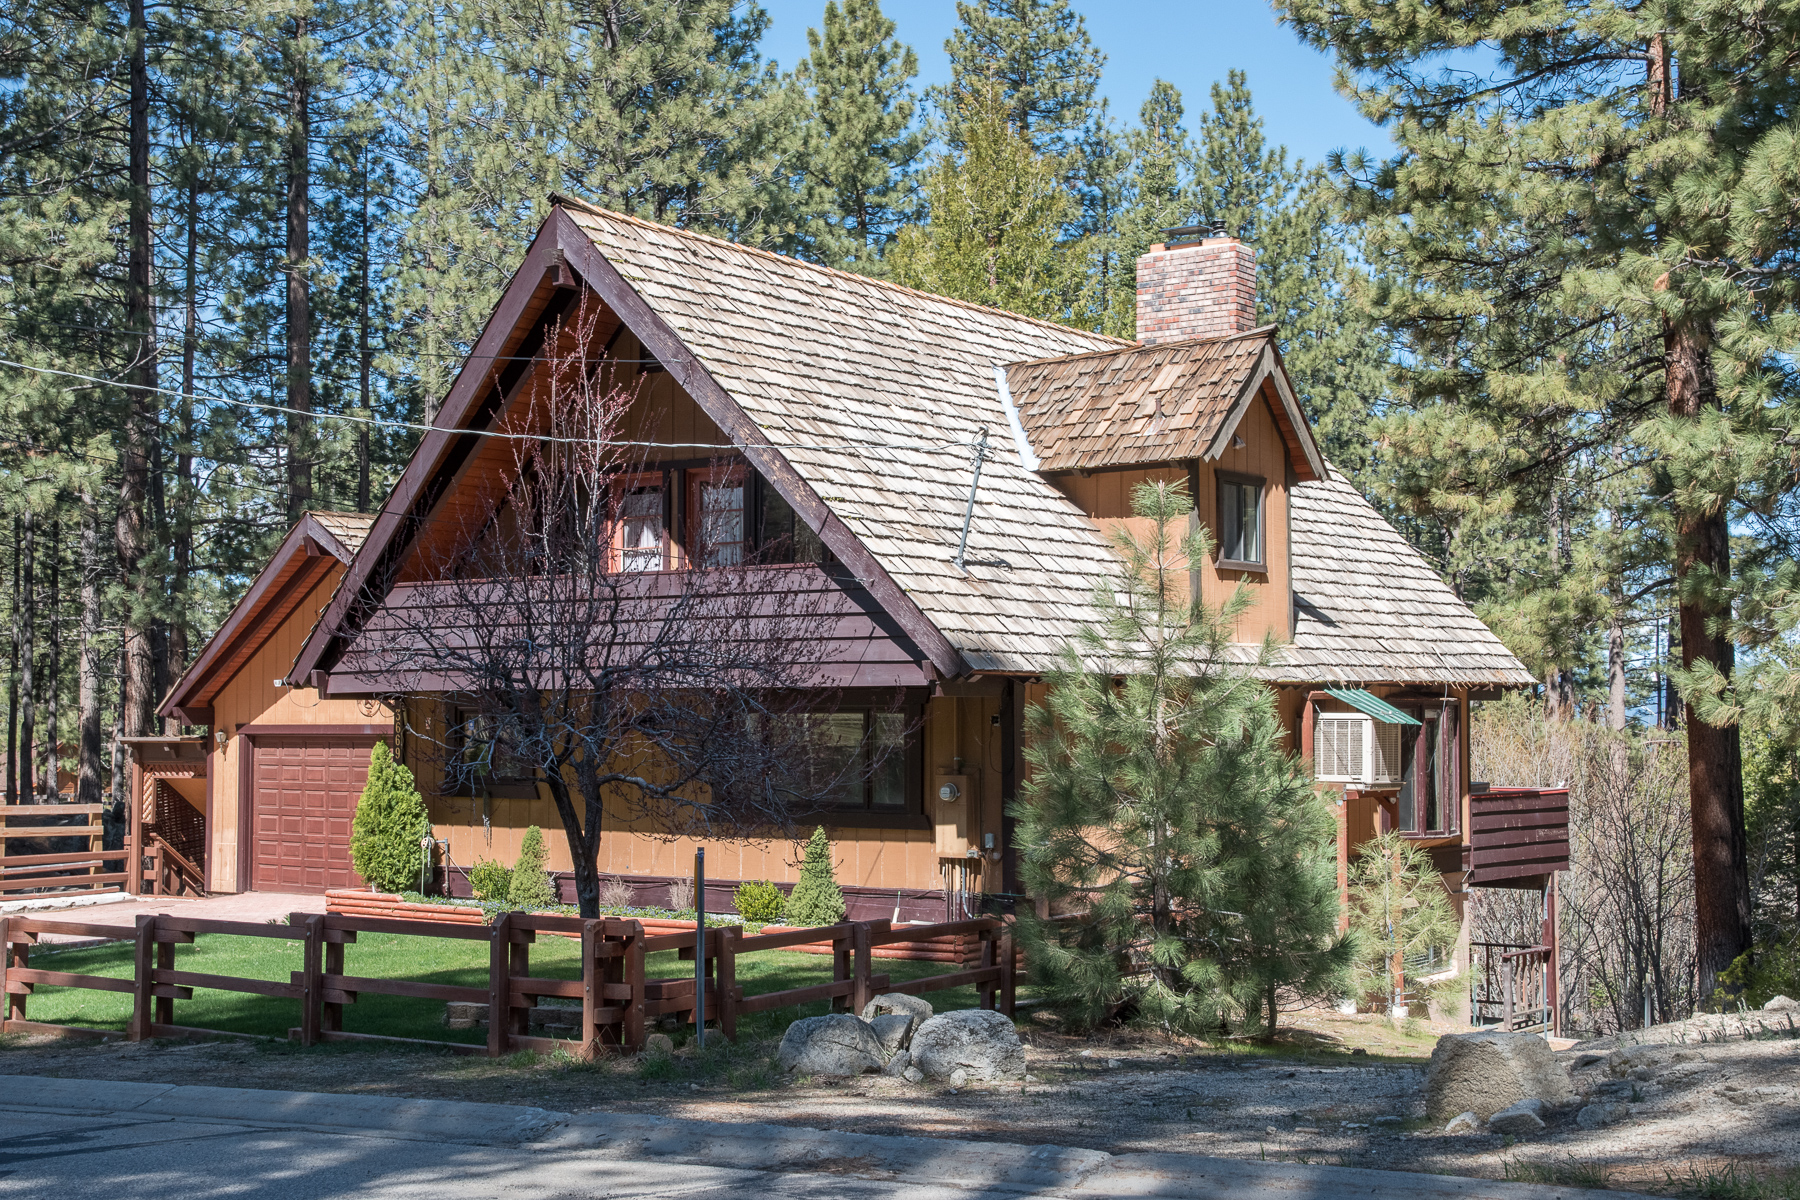 vacation cabins home a camp featured main blog new at rent houston rental tahoe spotlight for lake cabin homes